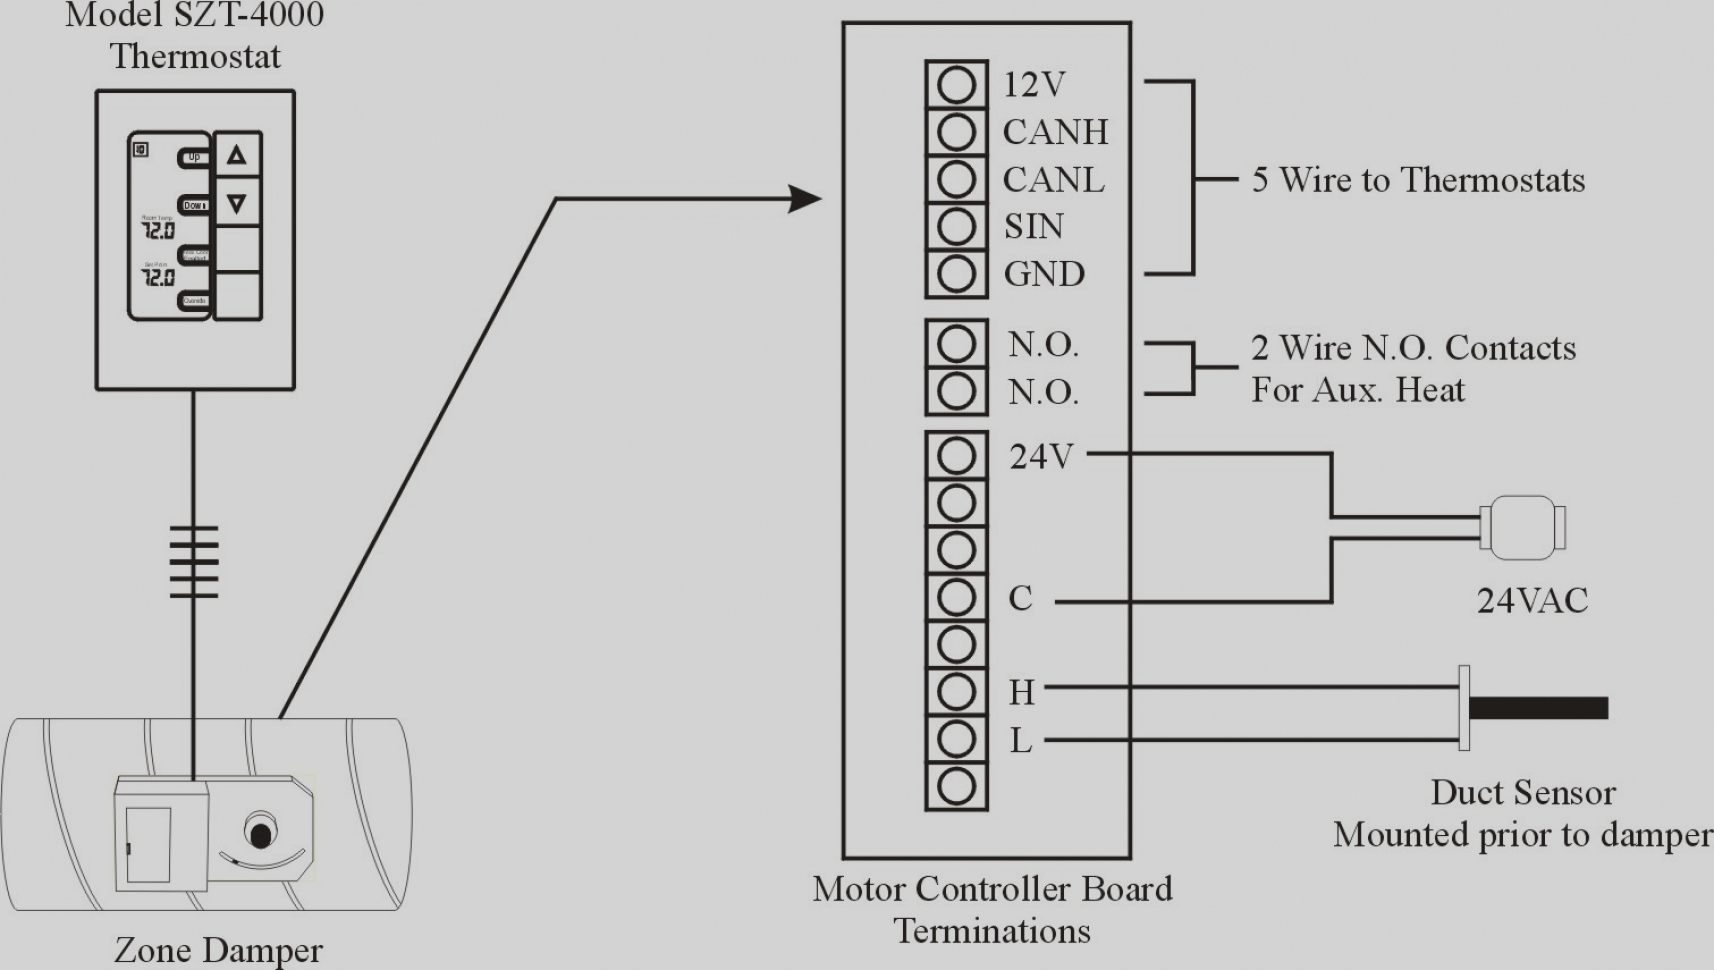 hight resolution of uc7067rc wiring diagram wiring diagramuc7067rc wiring instructions wiring diagram showuc7067rc wiring diagram electrical wiring diagram uc7067rc